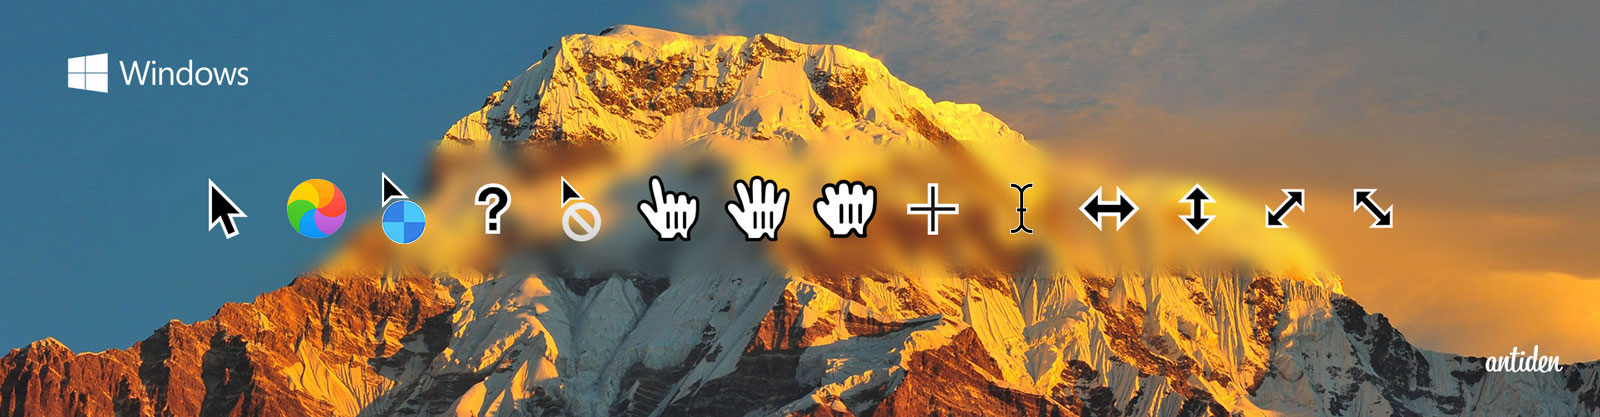 macOS Sierra cursors for Windows (only 200%) by antiden